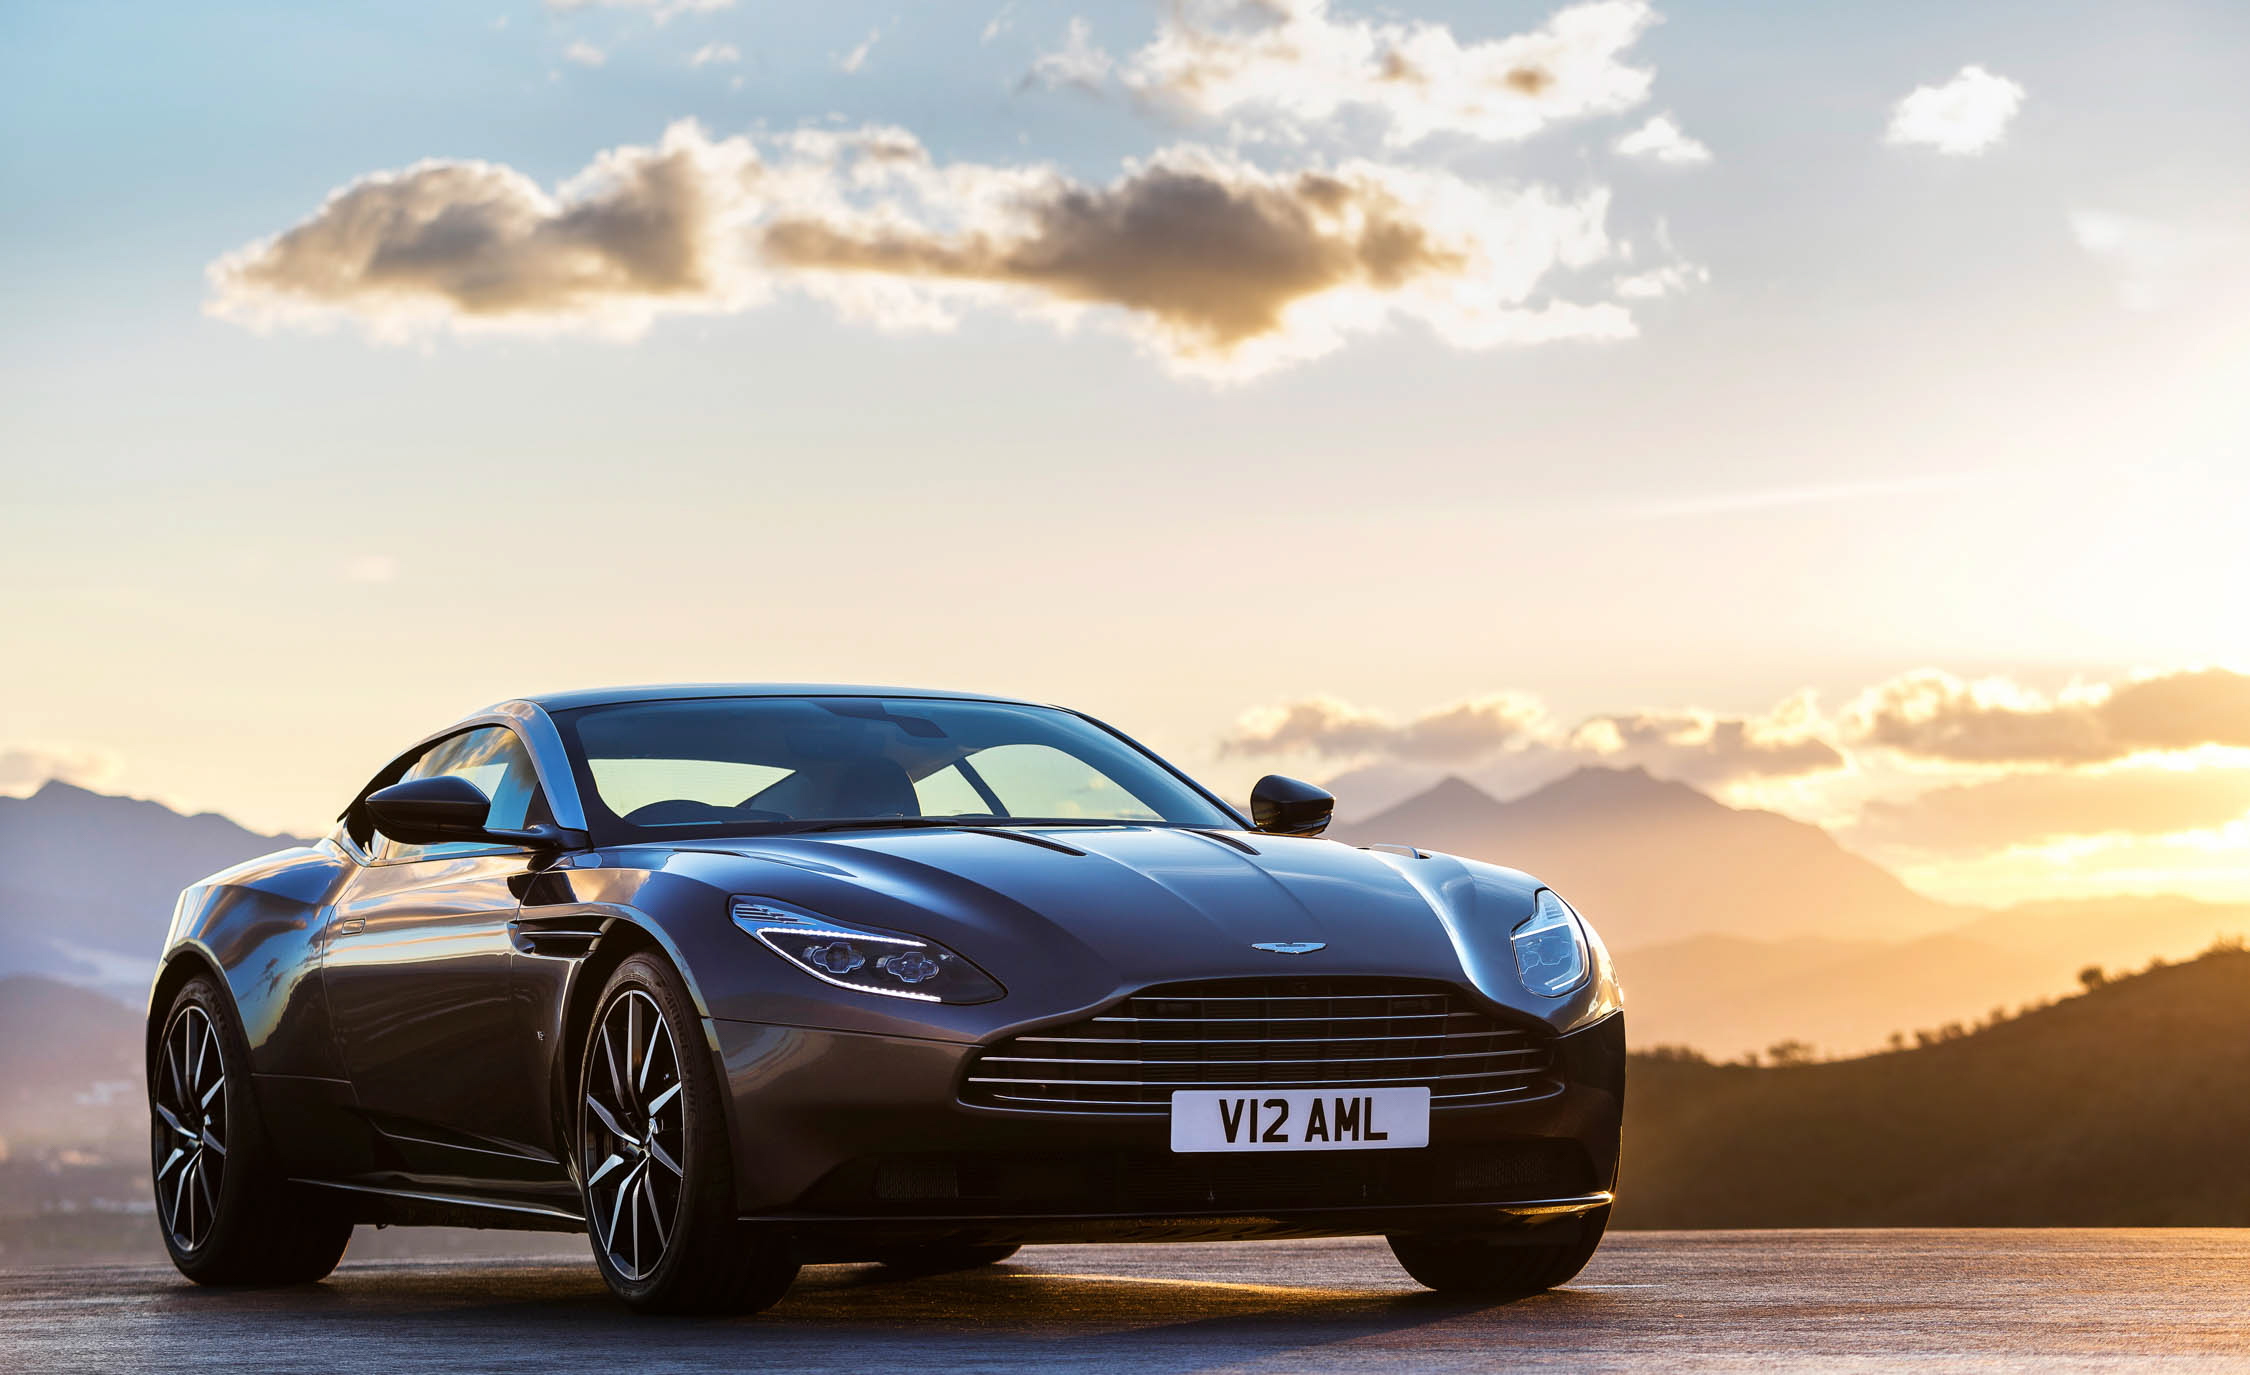 2017 Aston Martin Db11 Wallpaper Hd (View 6 of 22)